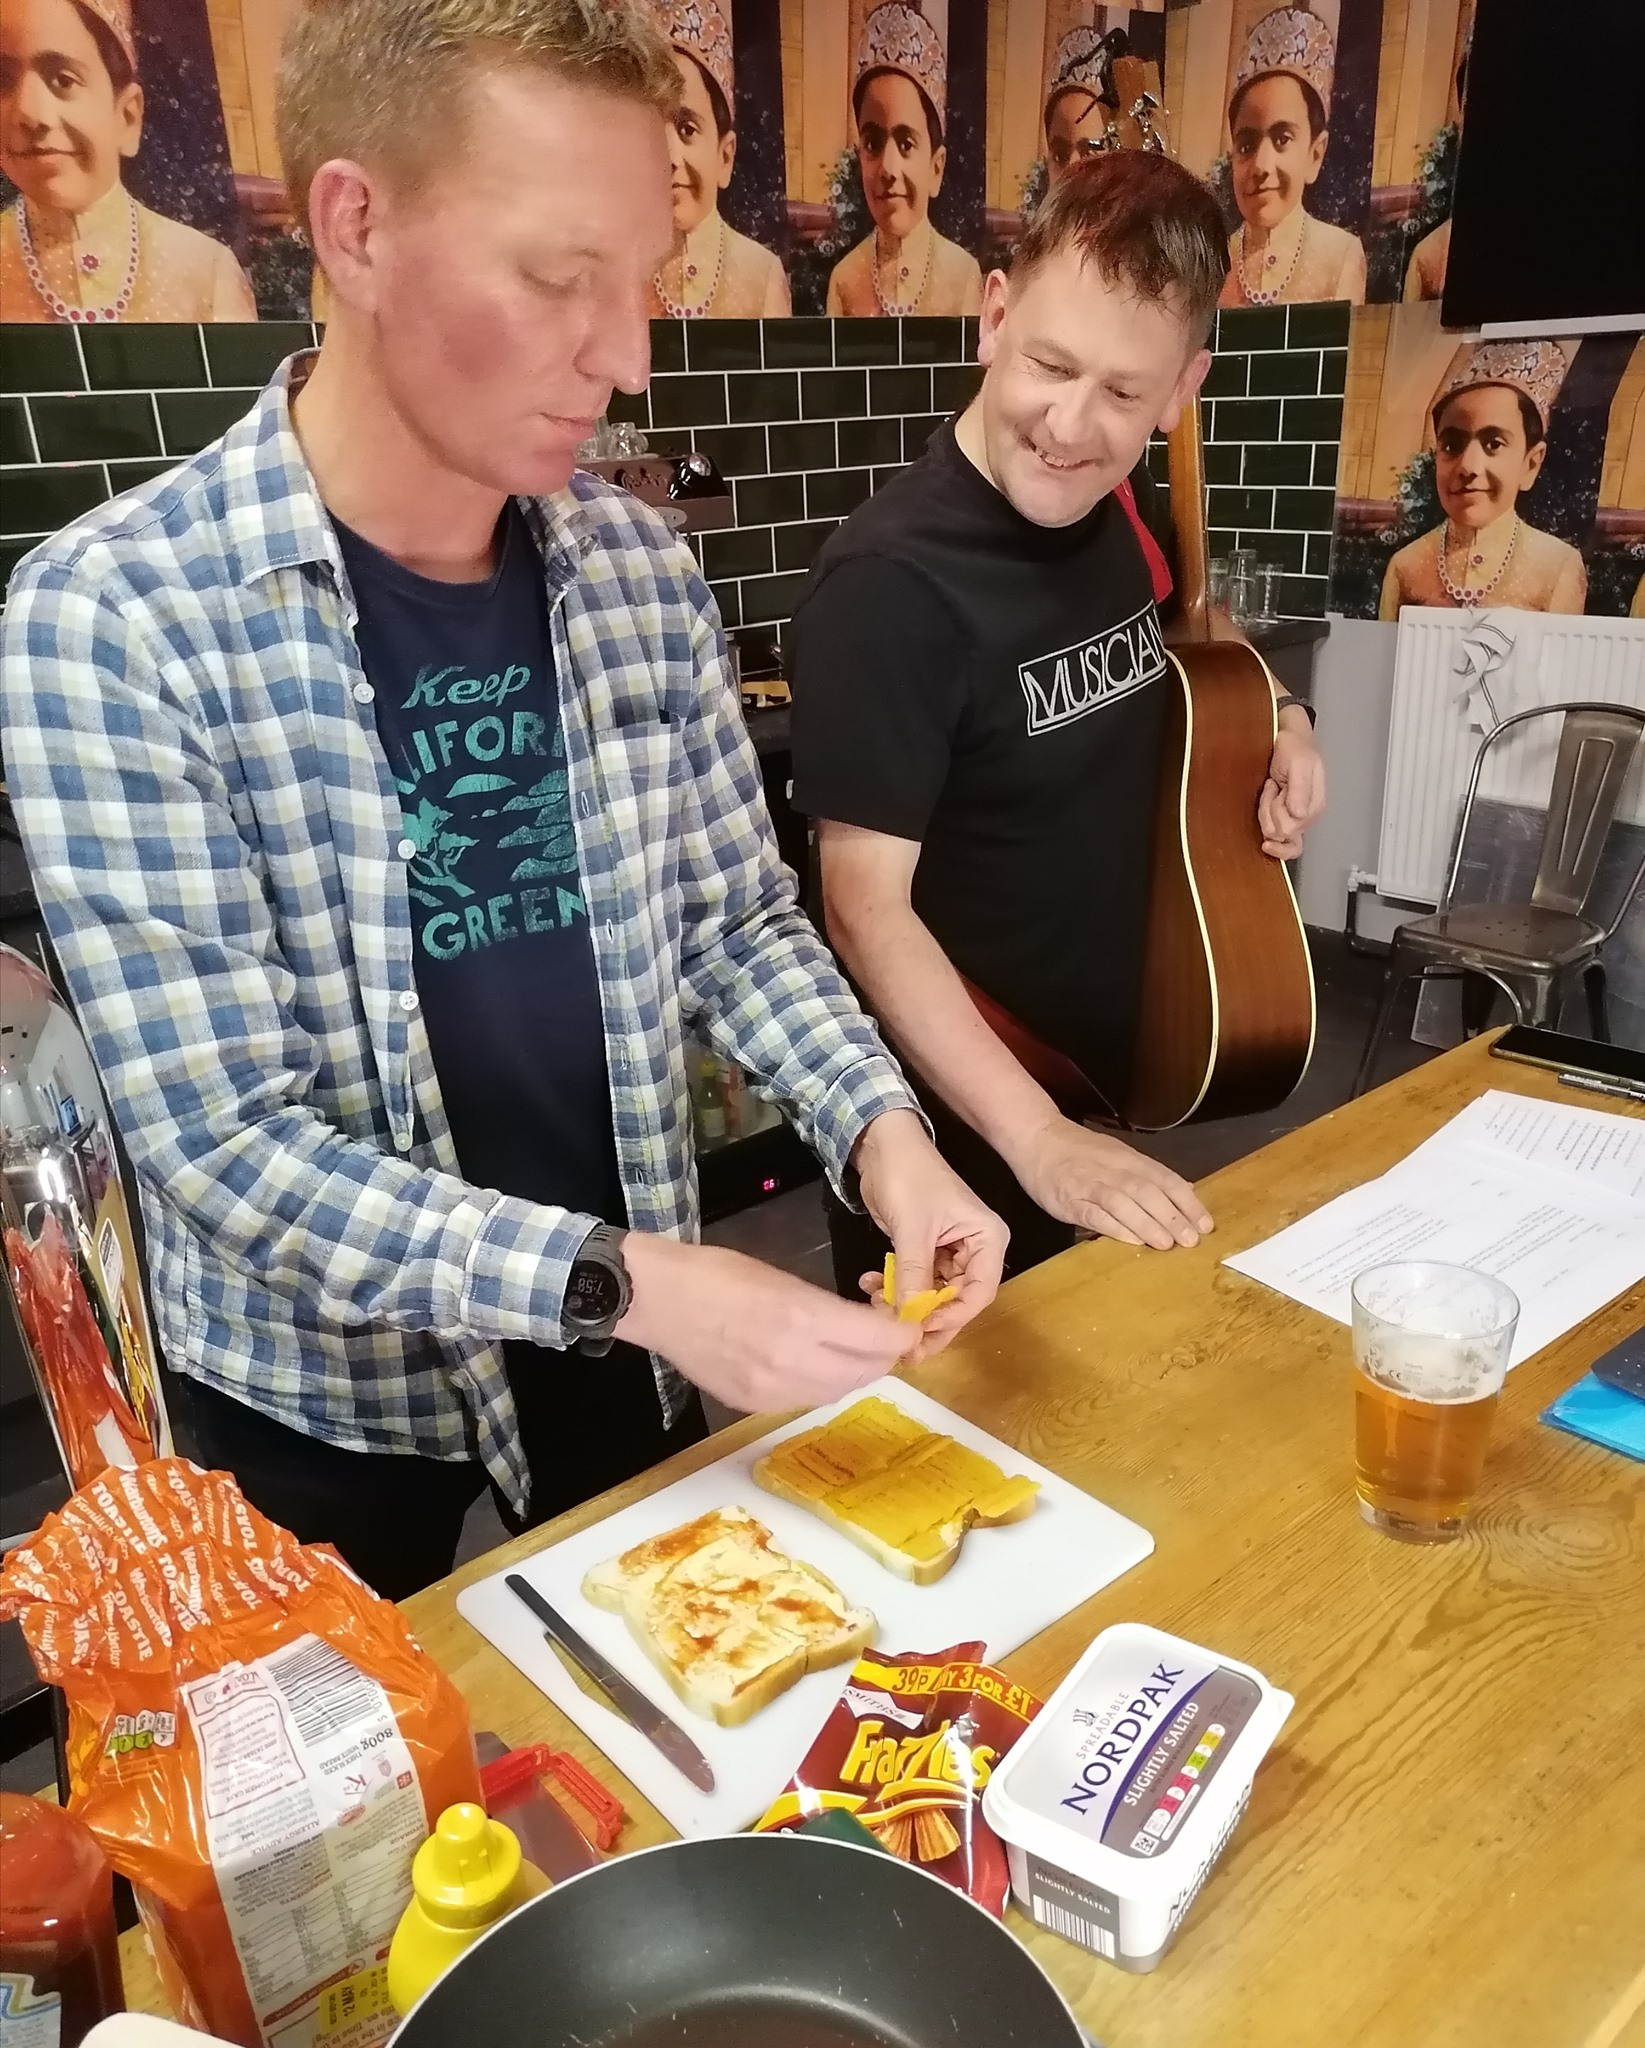 A photo of Mike McGrother and crisp sandwich supremo Ben Taylorson at a Ali Brownlee Social Club event